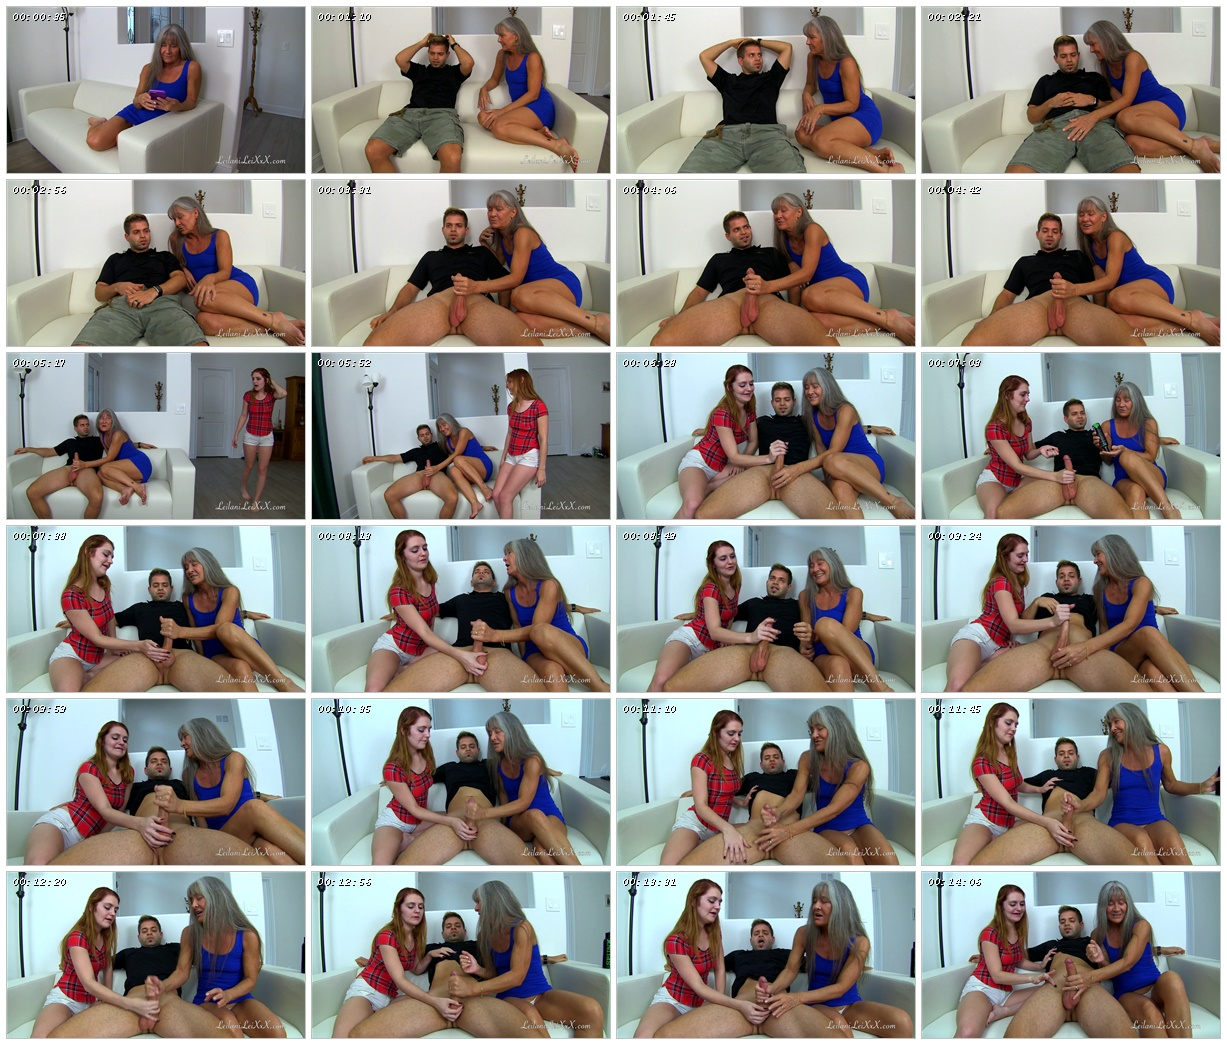 Stroking Young Dick With My Step-Daughter - Aglaea Productions - Desiree Audri, Leilani Lei_scrlist